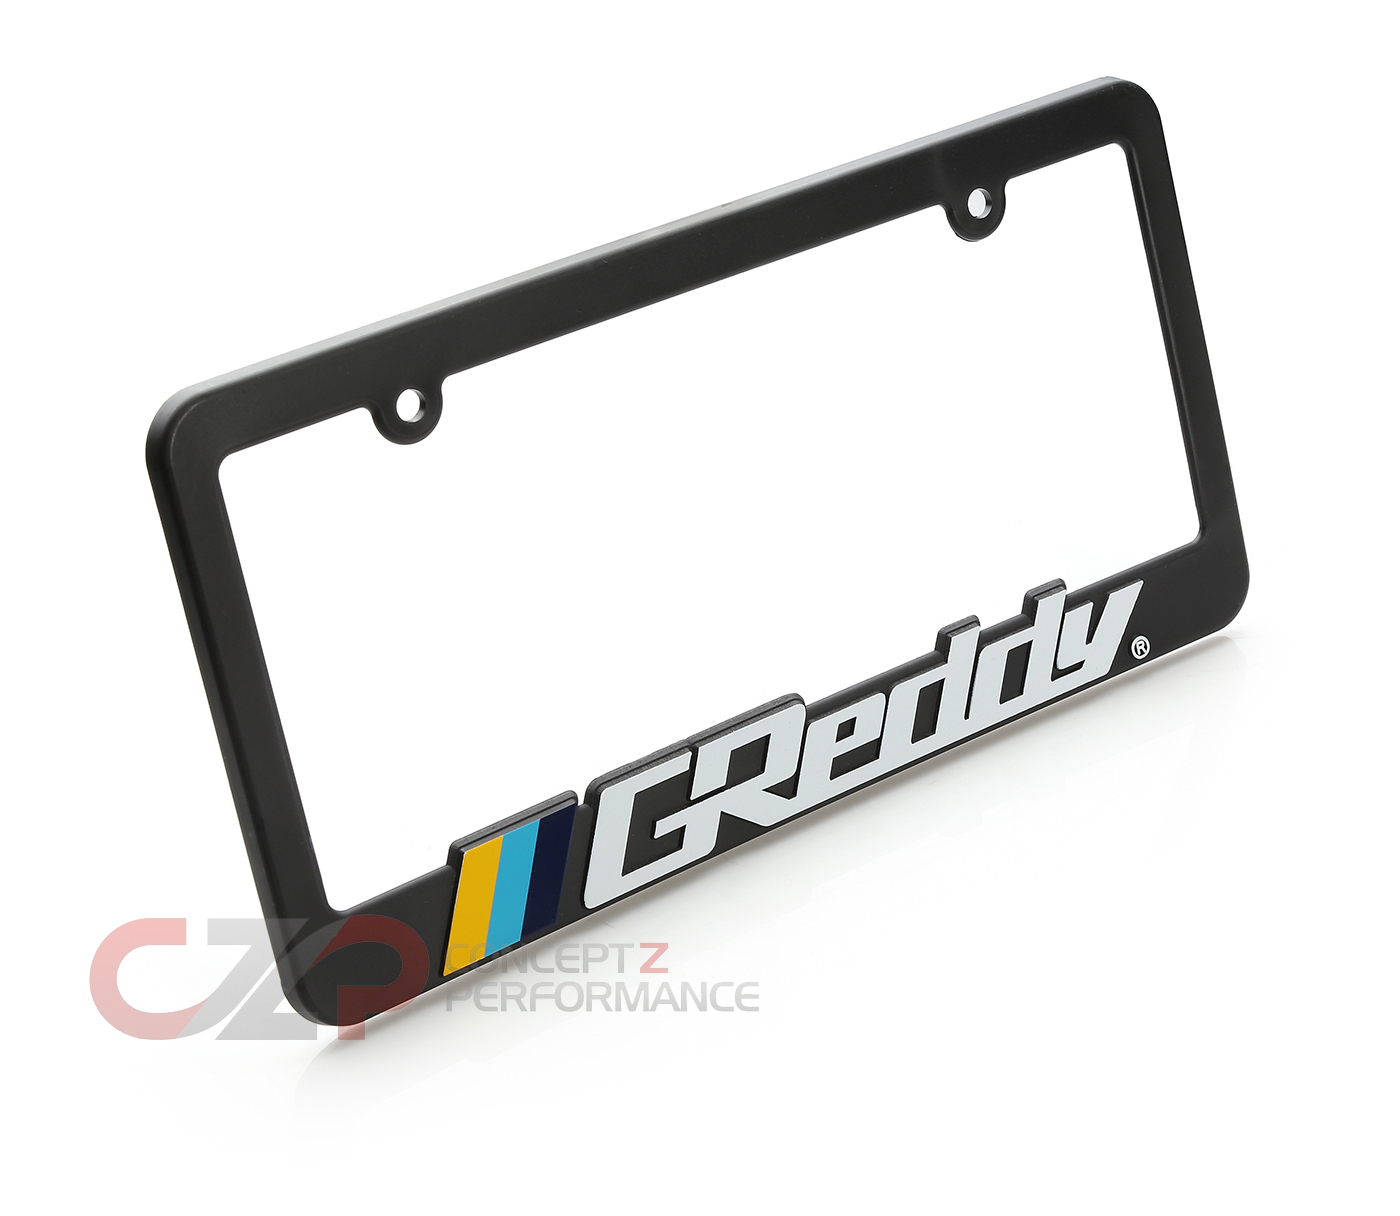 Greddy LIC02010 Official License Plate Frame